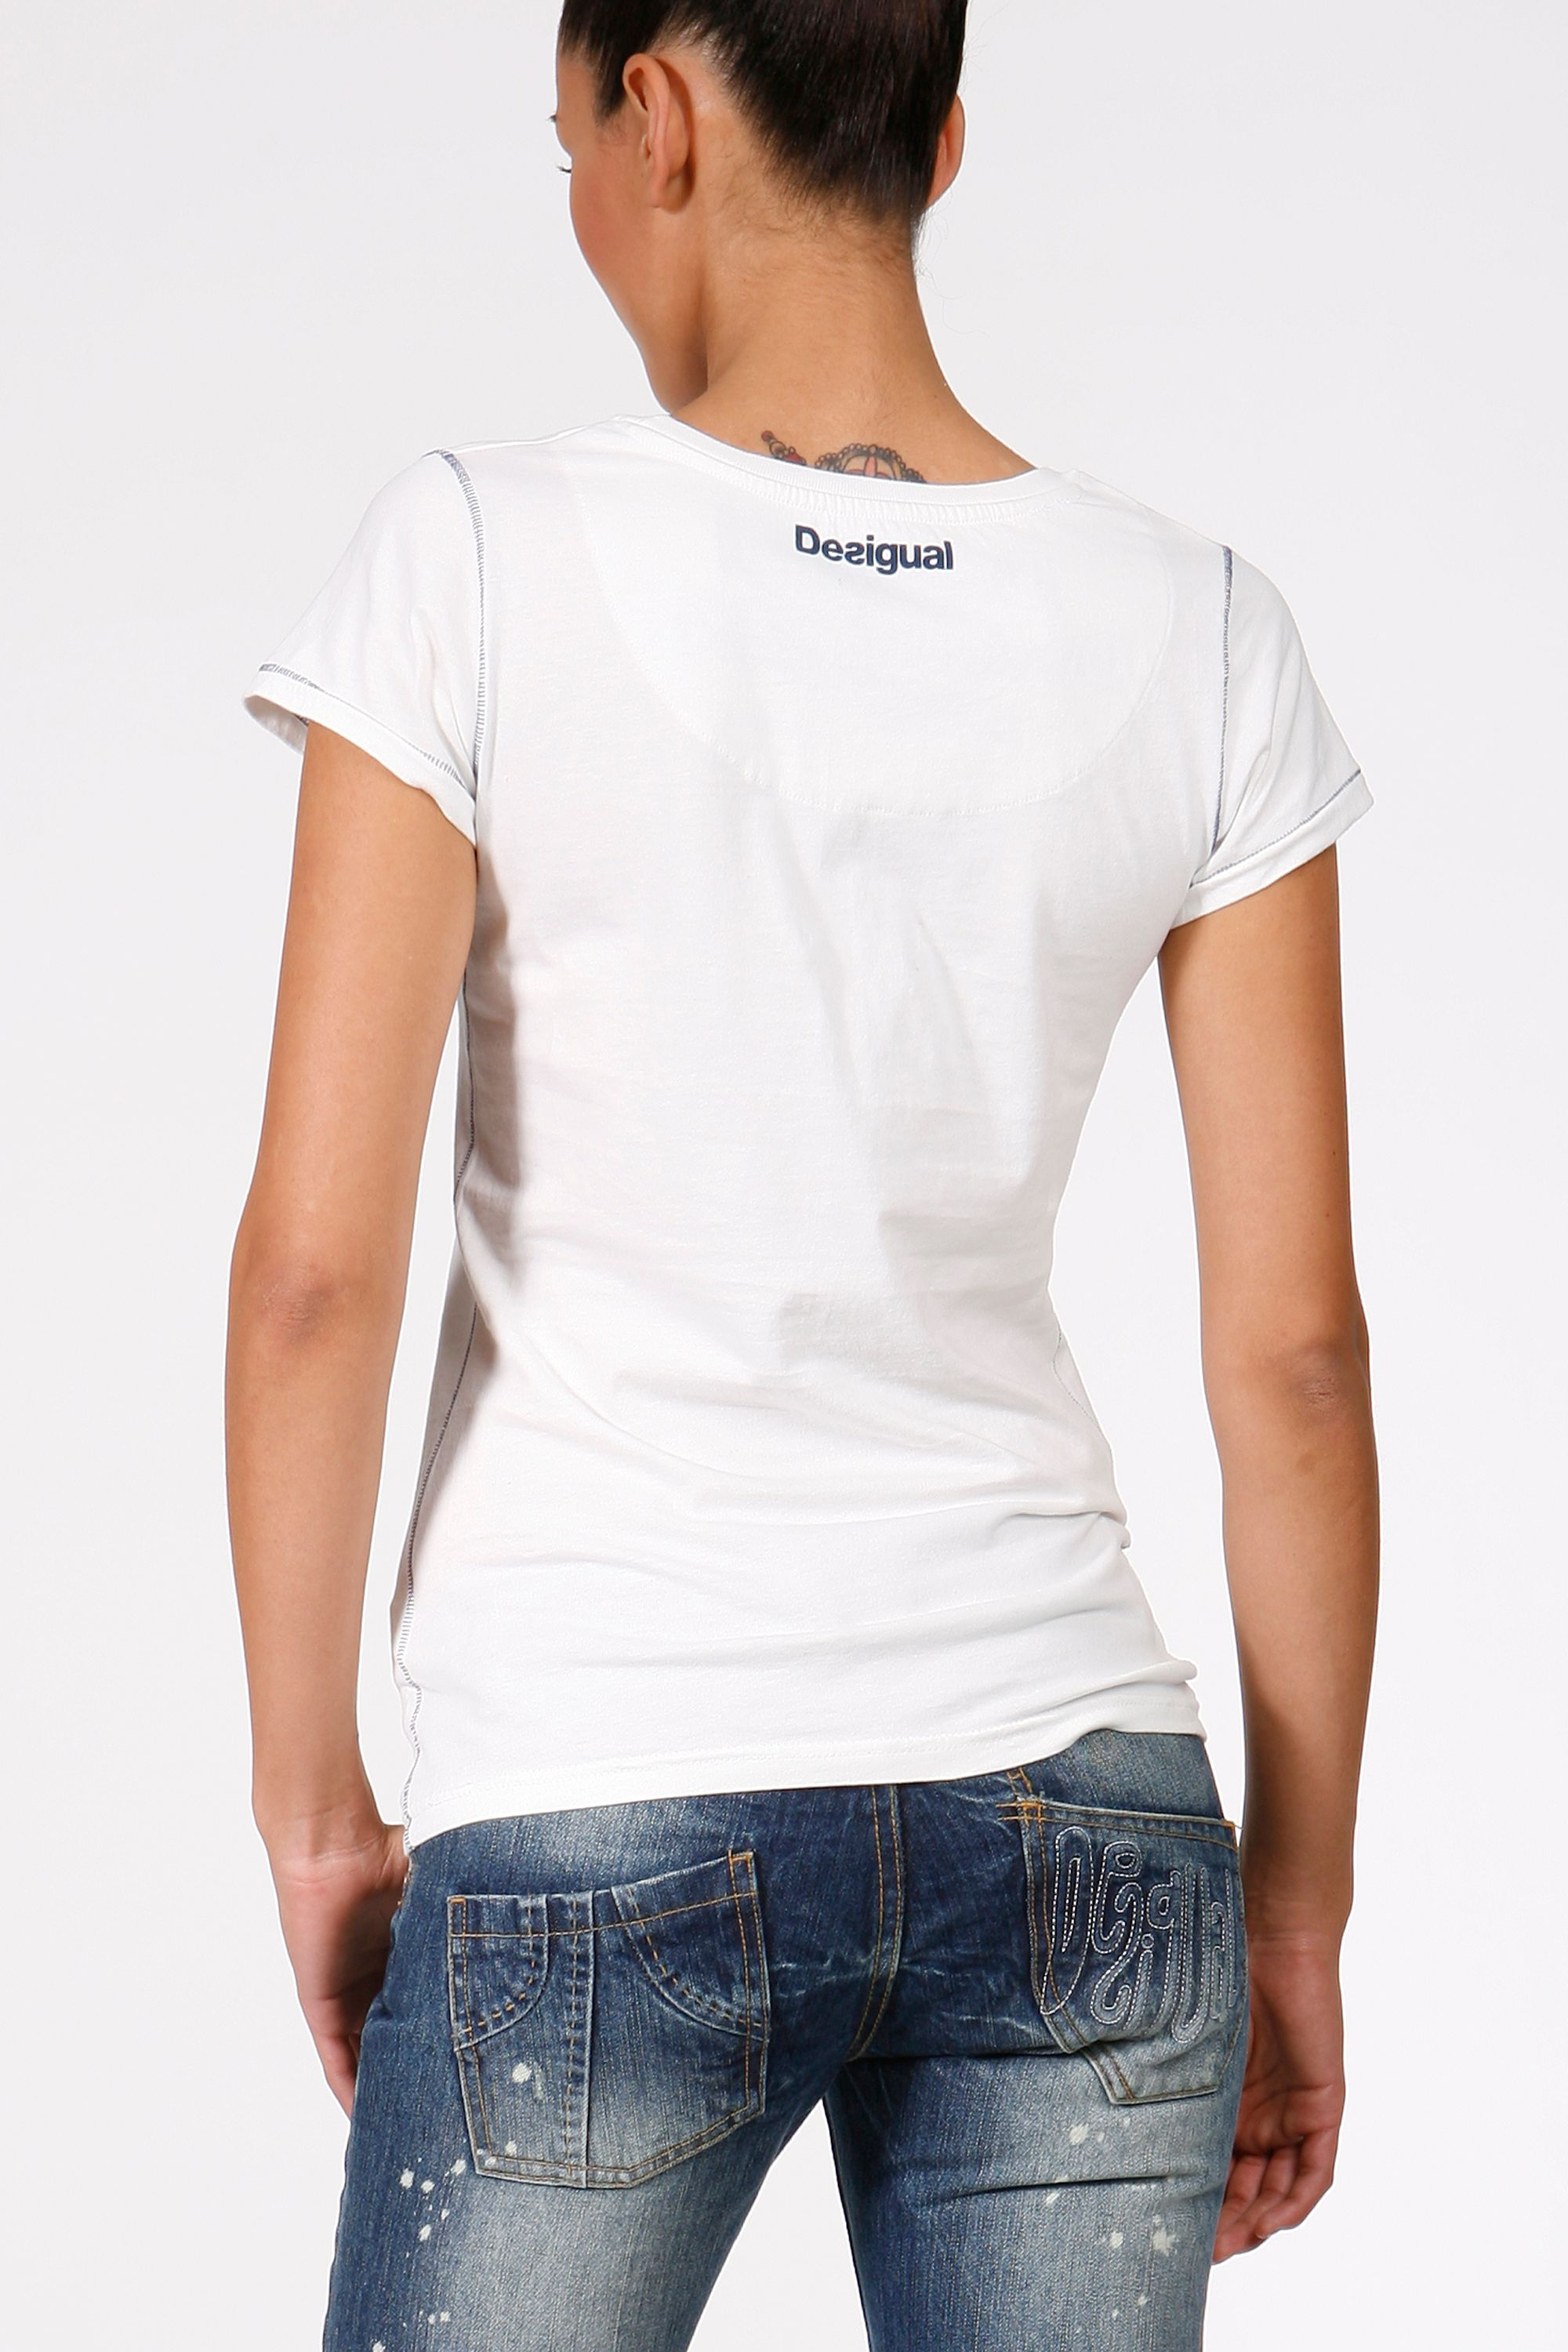 Desigual T-shirt more for less Off White product image